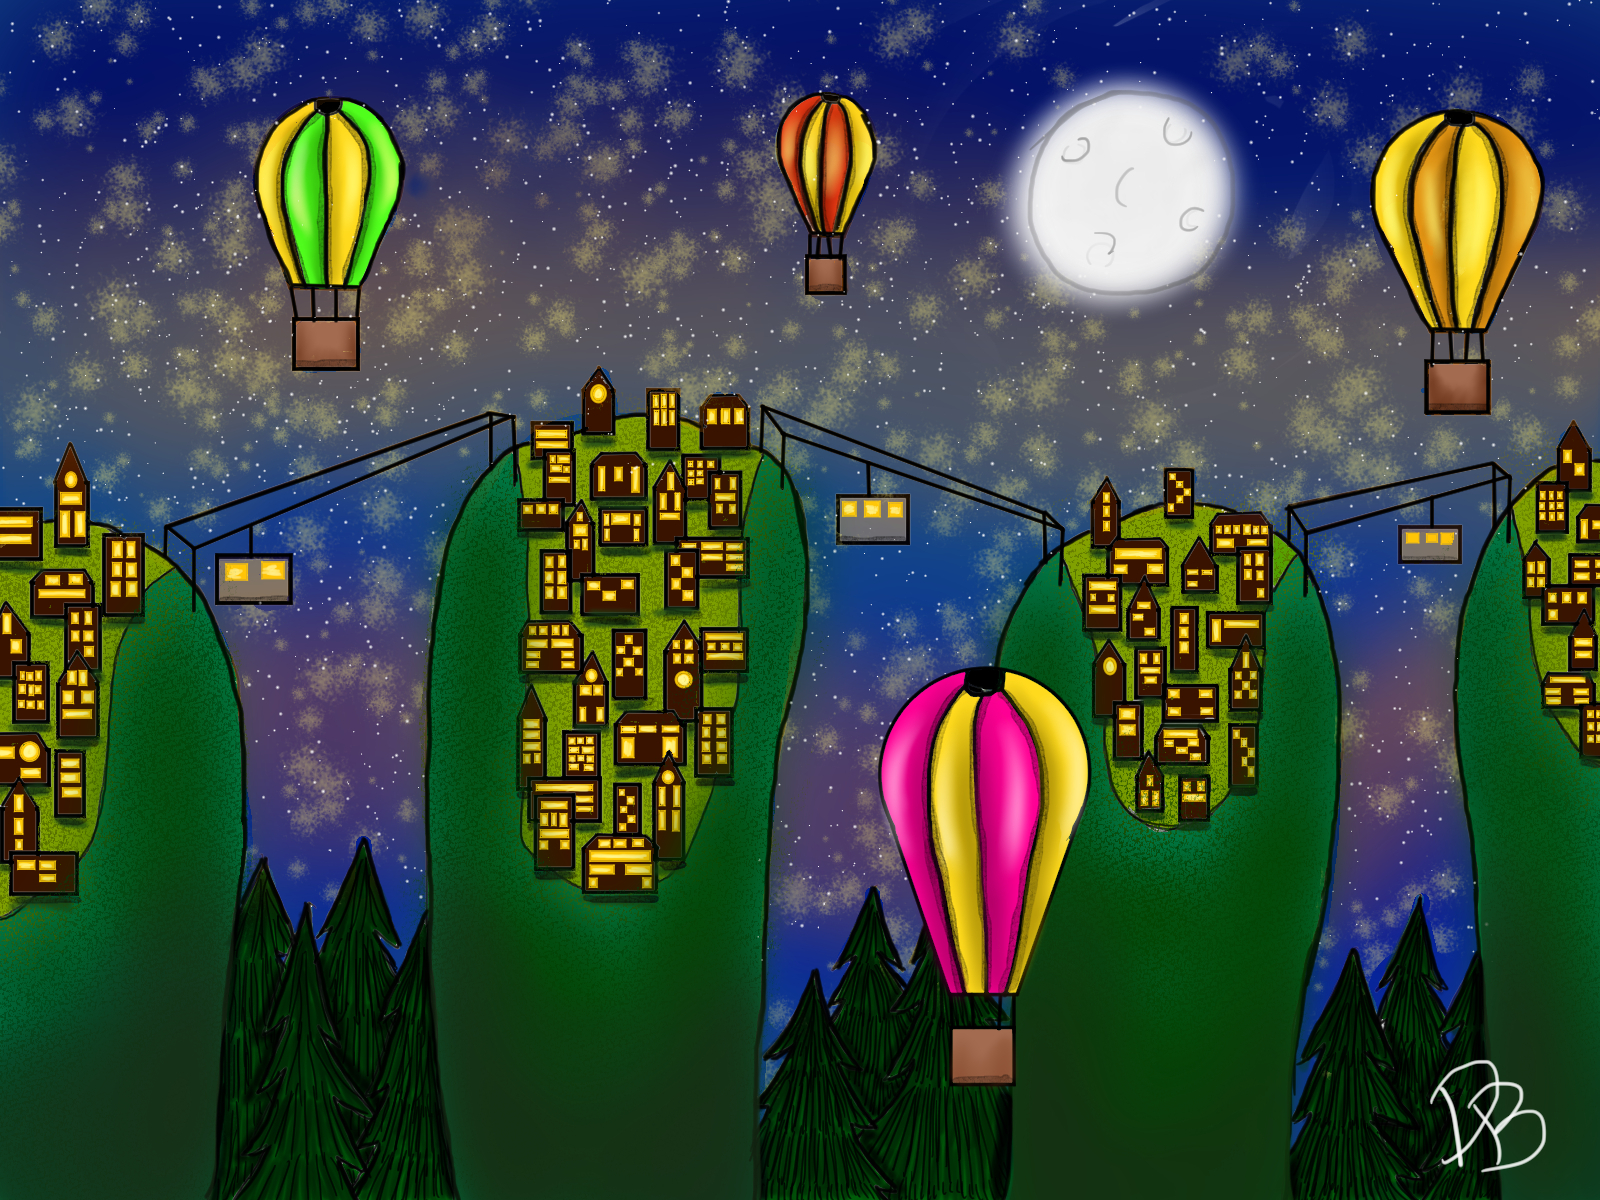 Towns in the nightsky